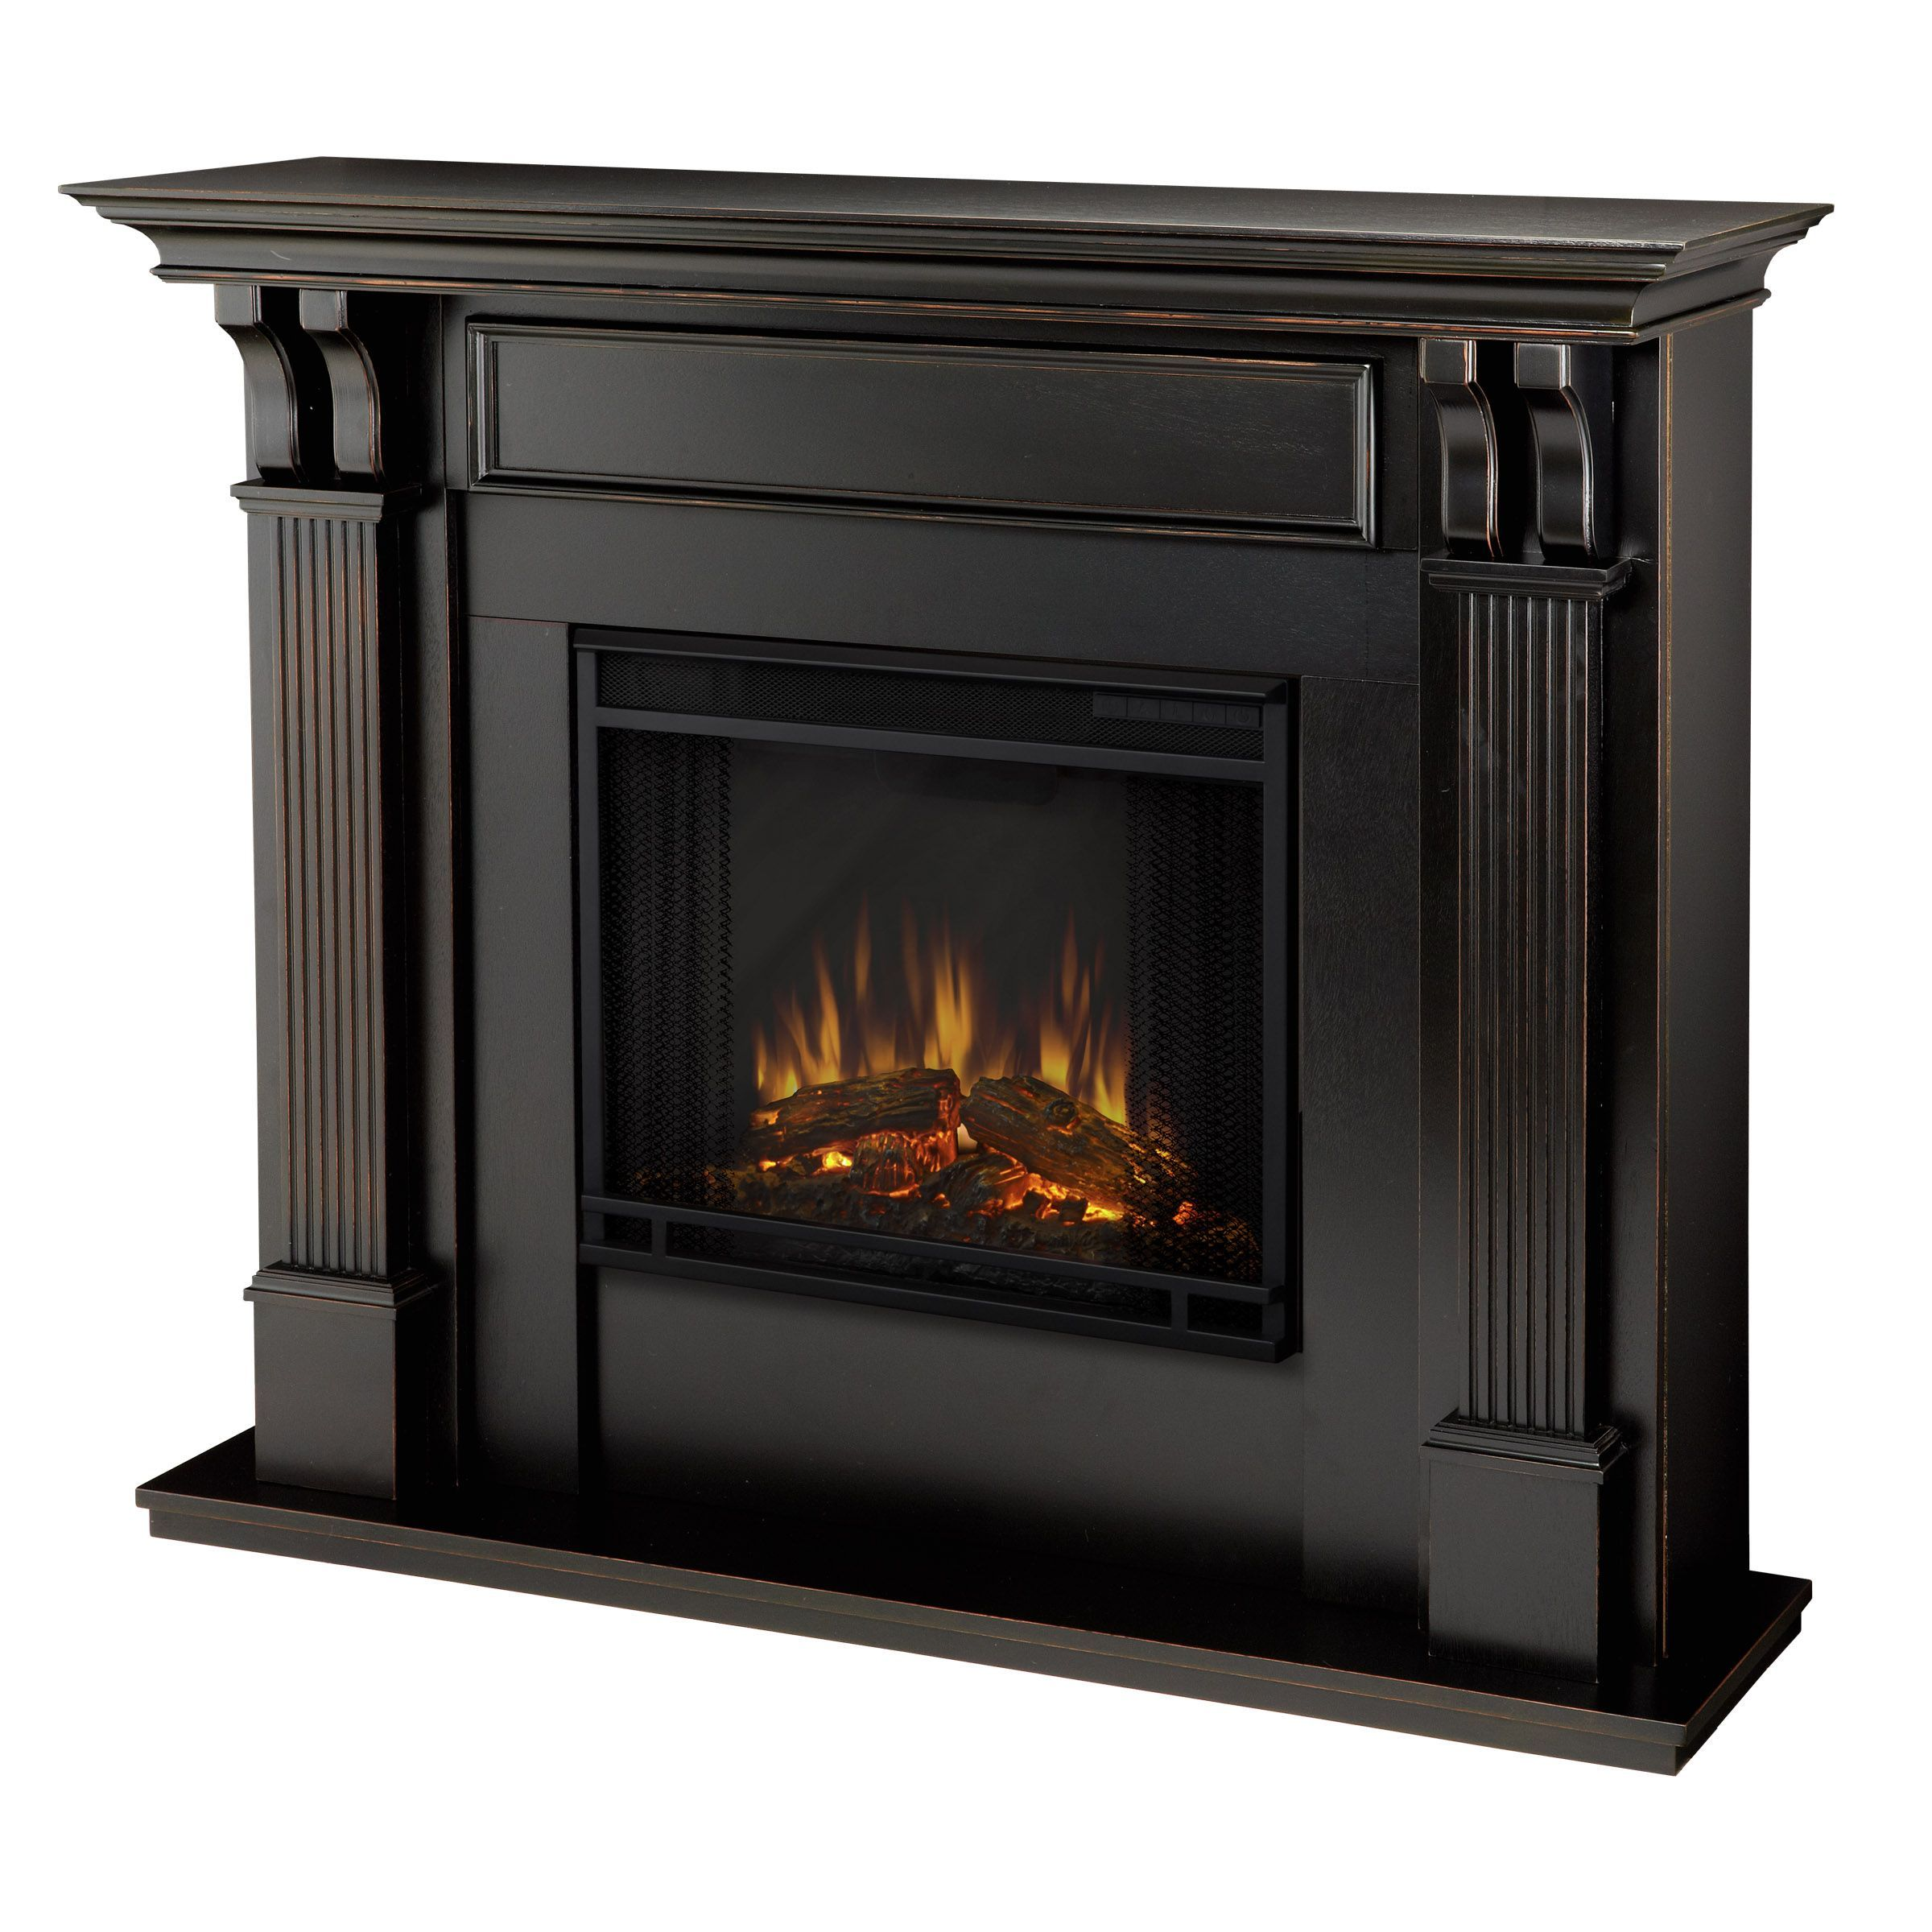 give your home a warm glow with this black electric fireplace the